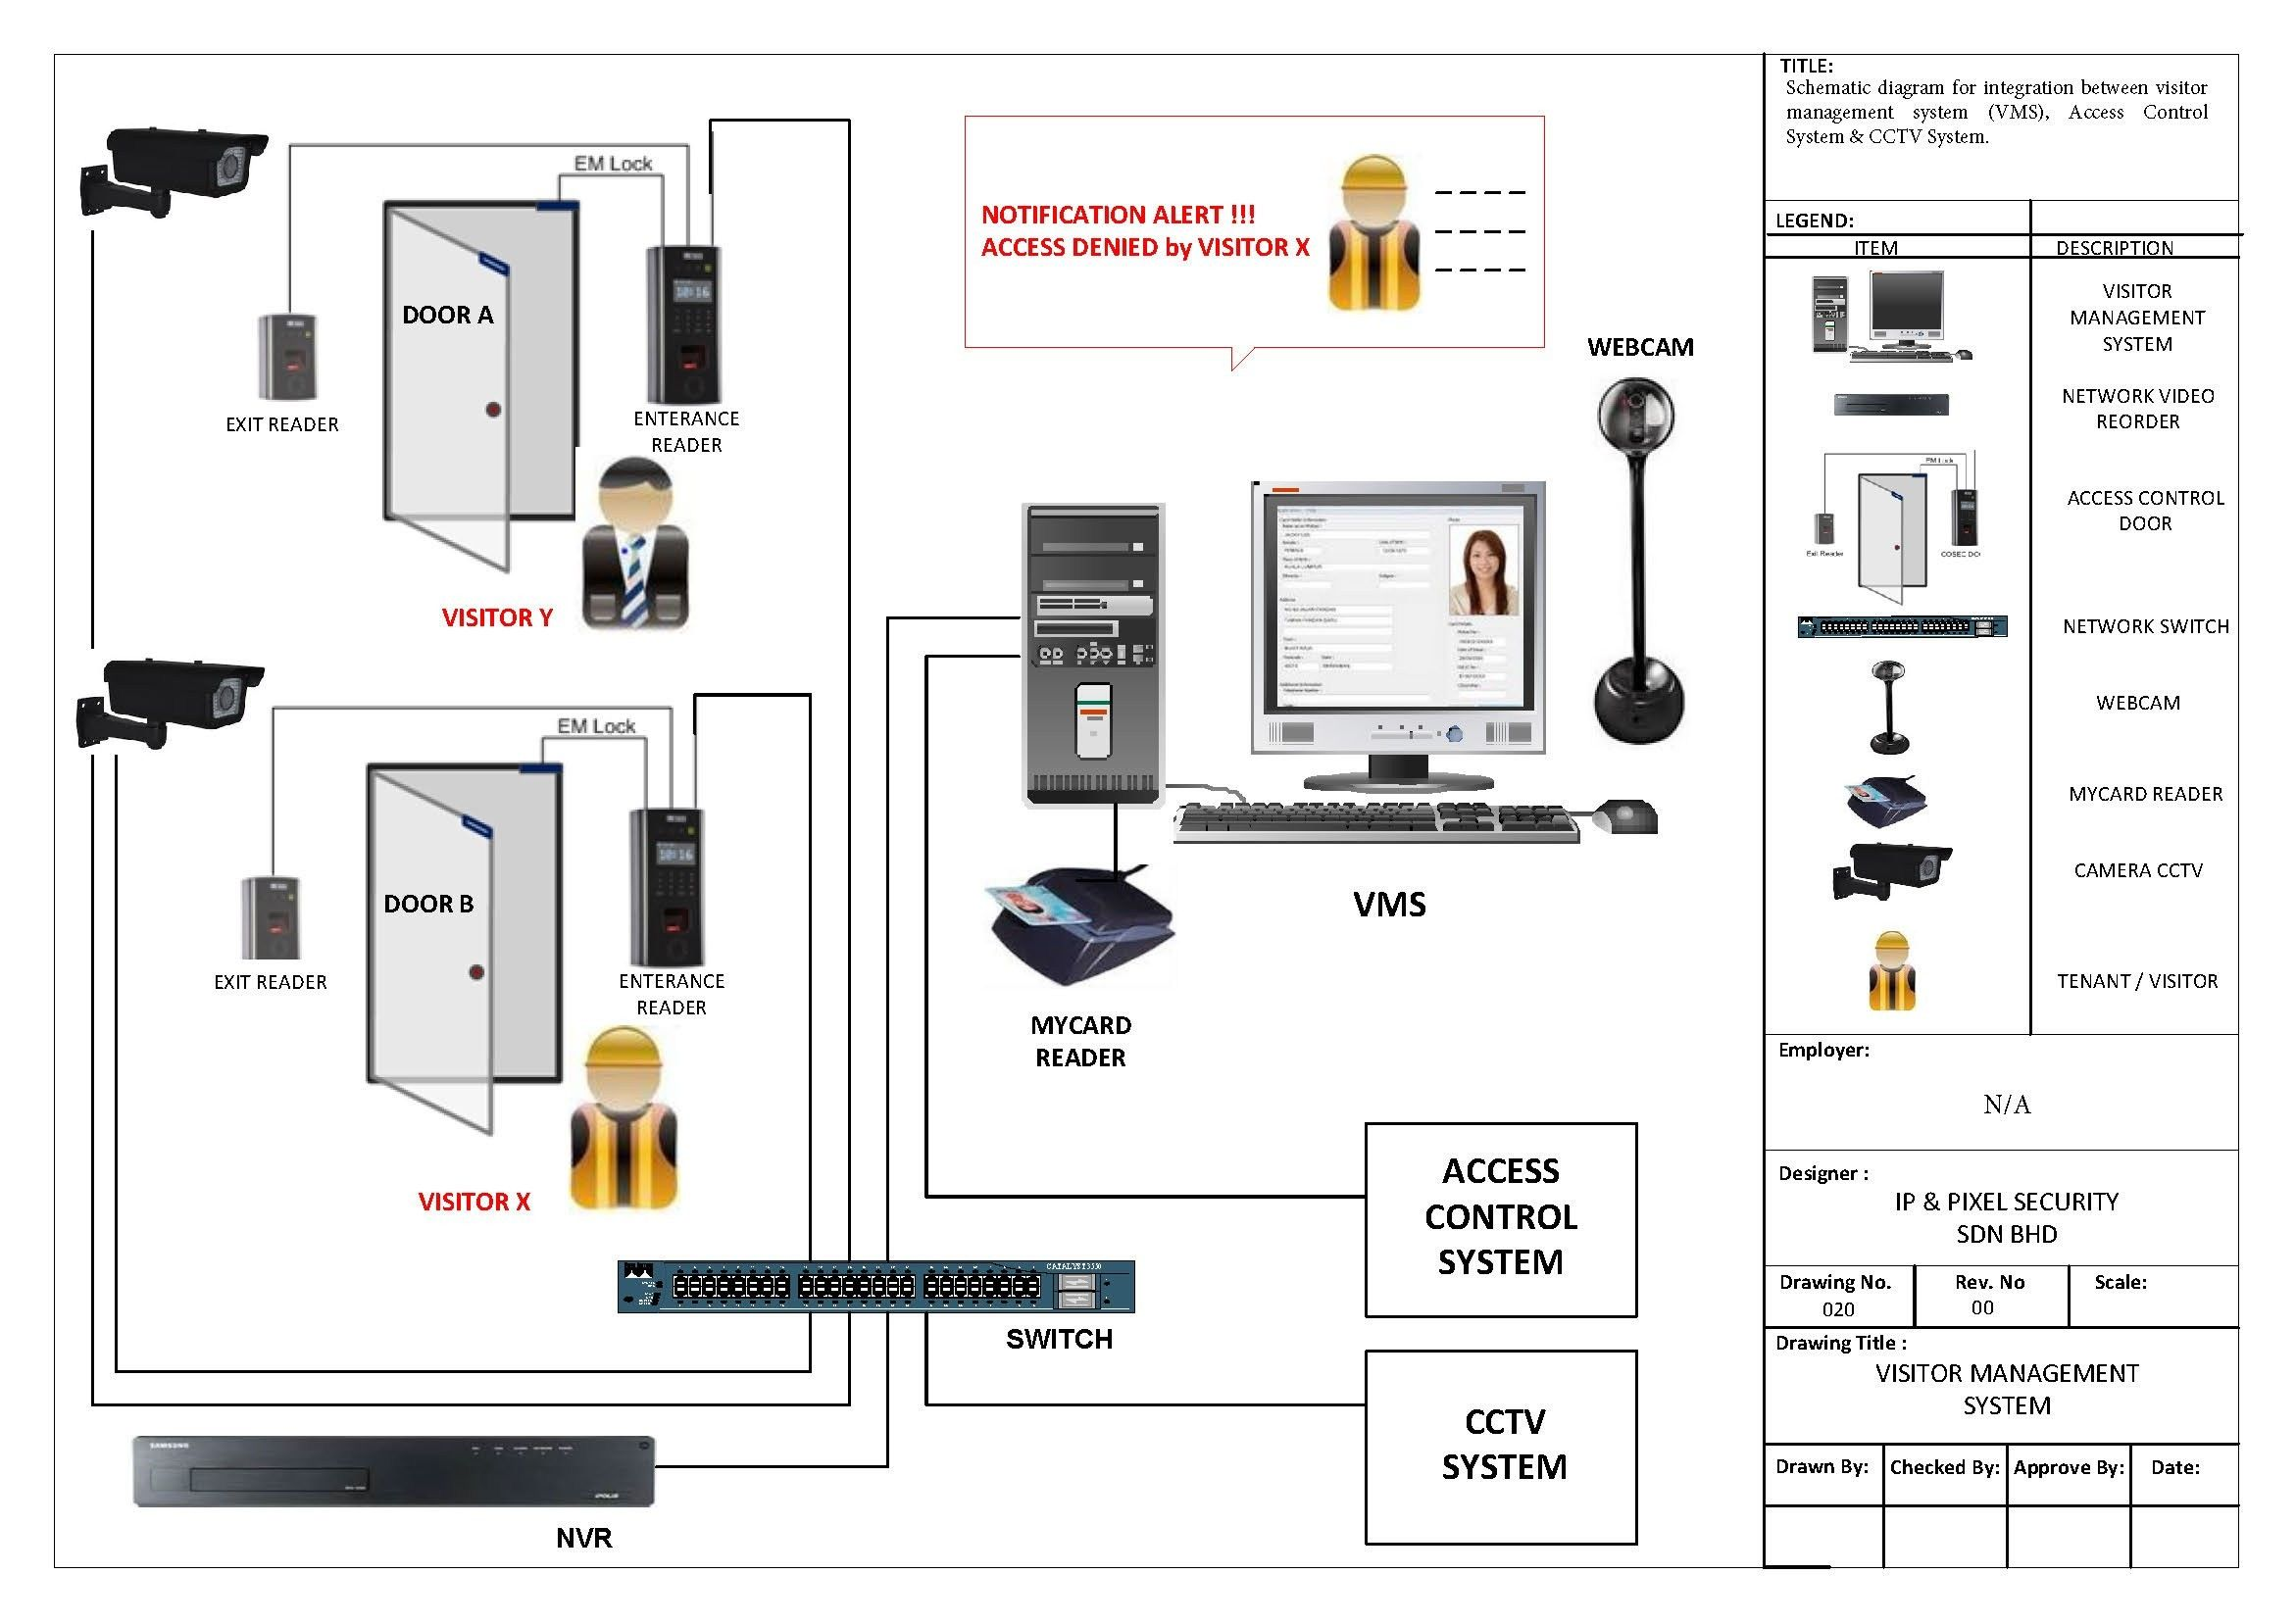 New Fire Alarm System Wiring Diagram Pdf Fire Alarm System Wireless Home Security Systems Home Security Systems